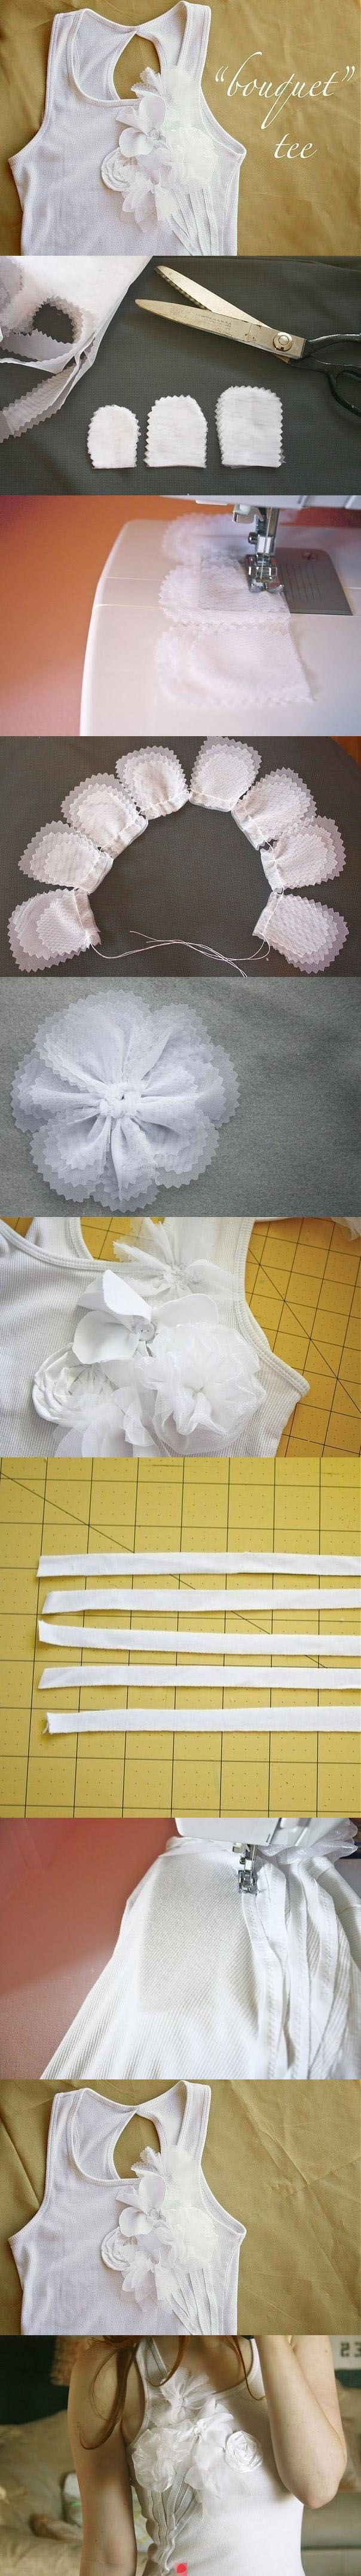 DIY Tee Shirt crafts craft ideas easy crafts diy ideas diy crafts diy clothes…